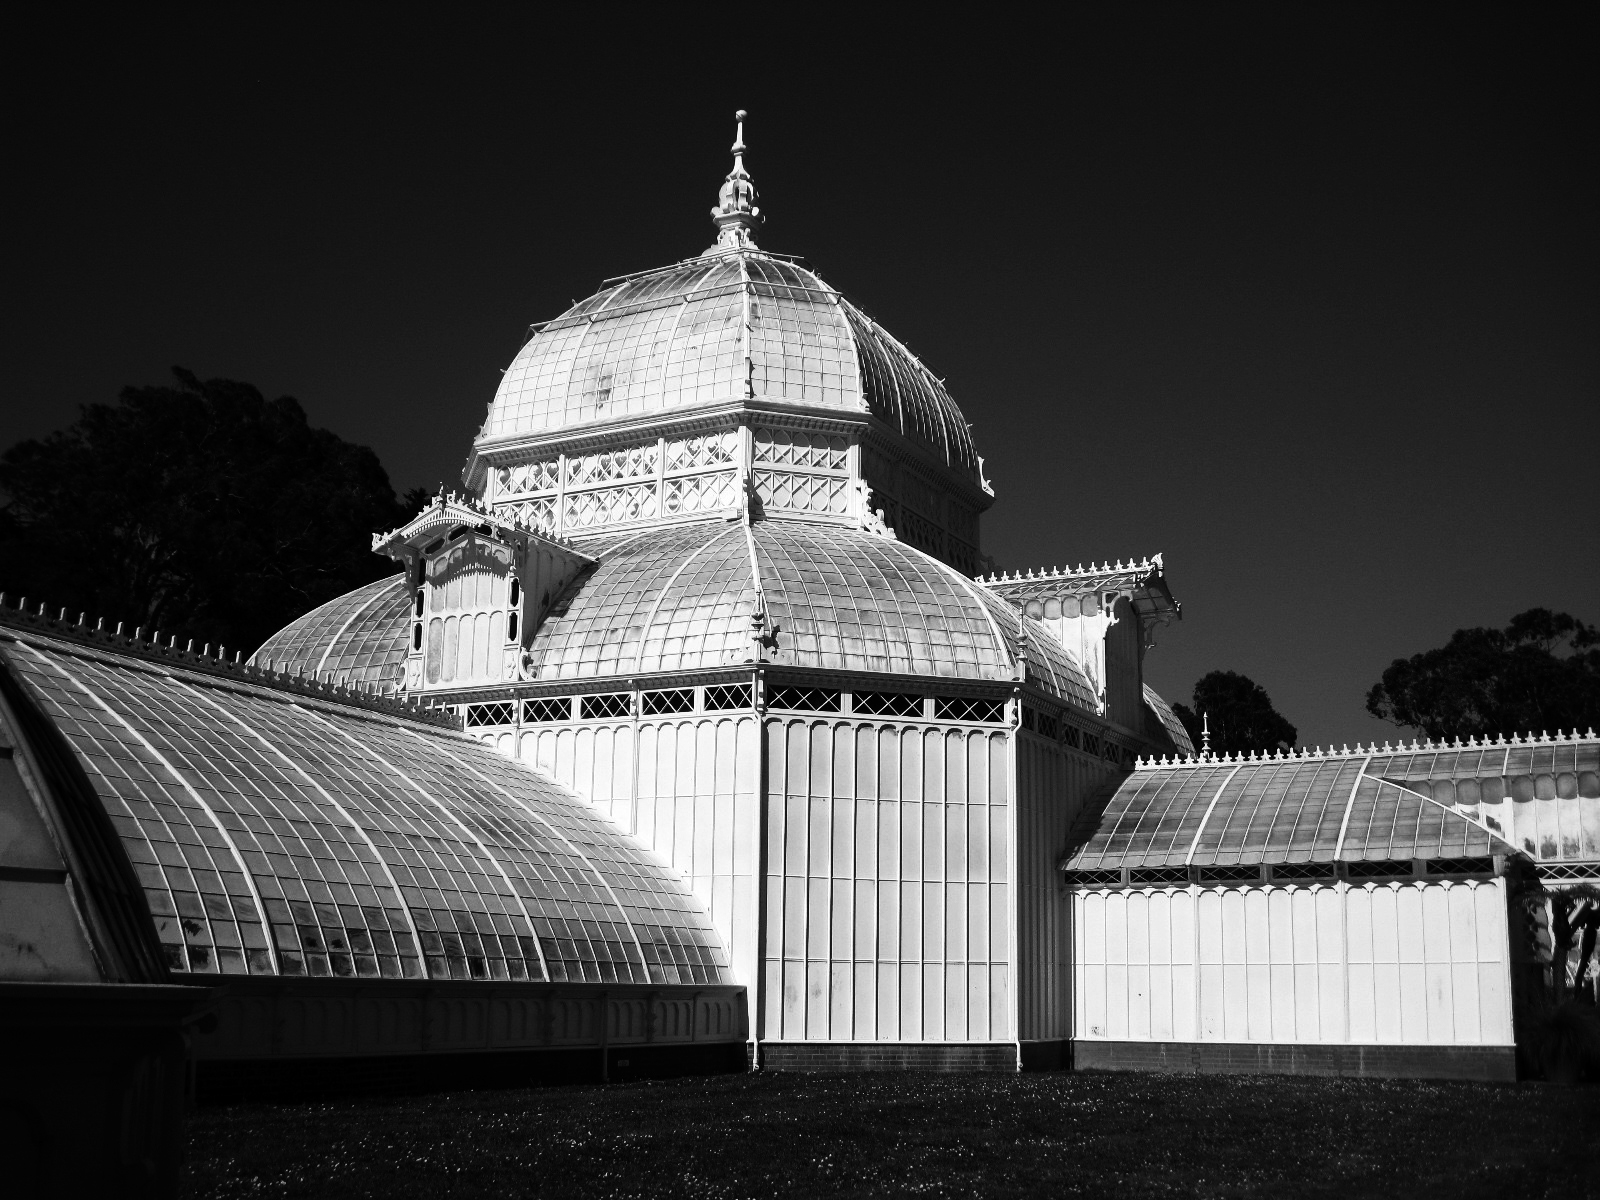 'Conservatory of Flowers-Golden Gate Park' (MB 1 Place) by Joyce Bell - MR